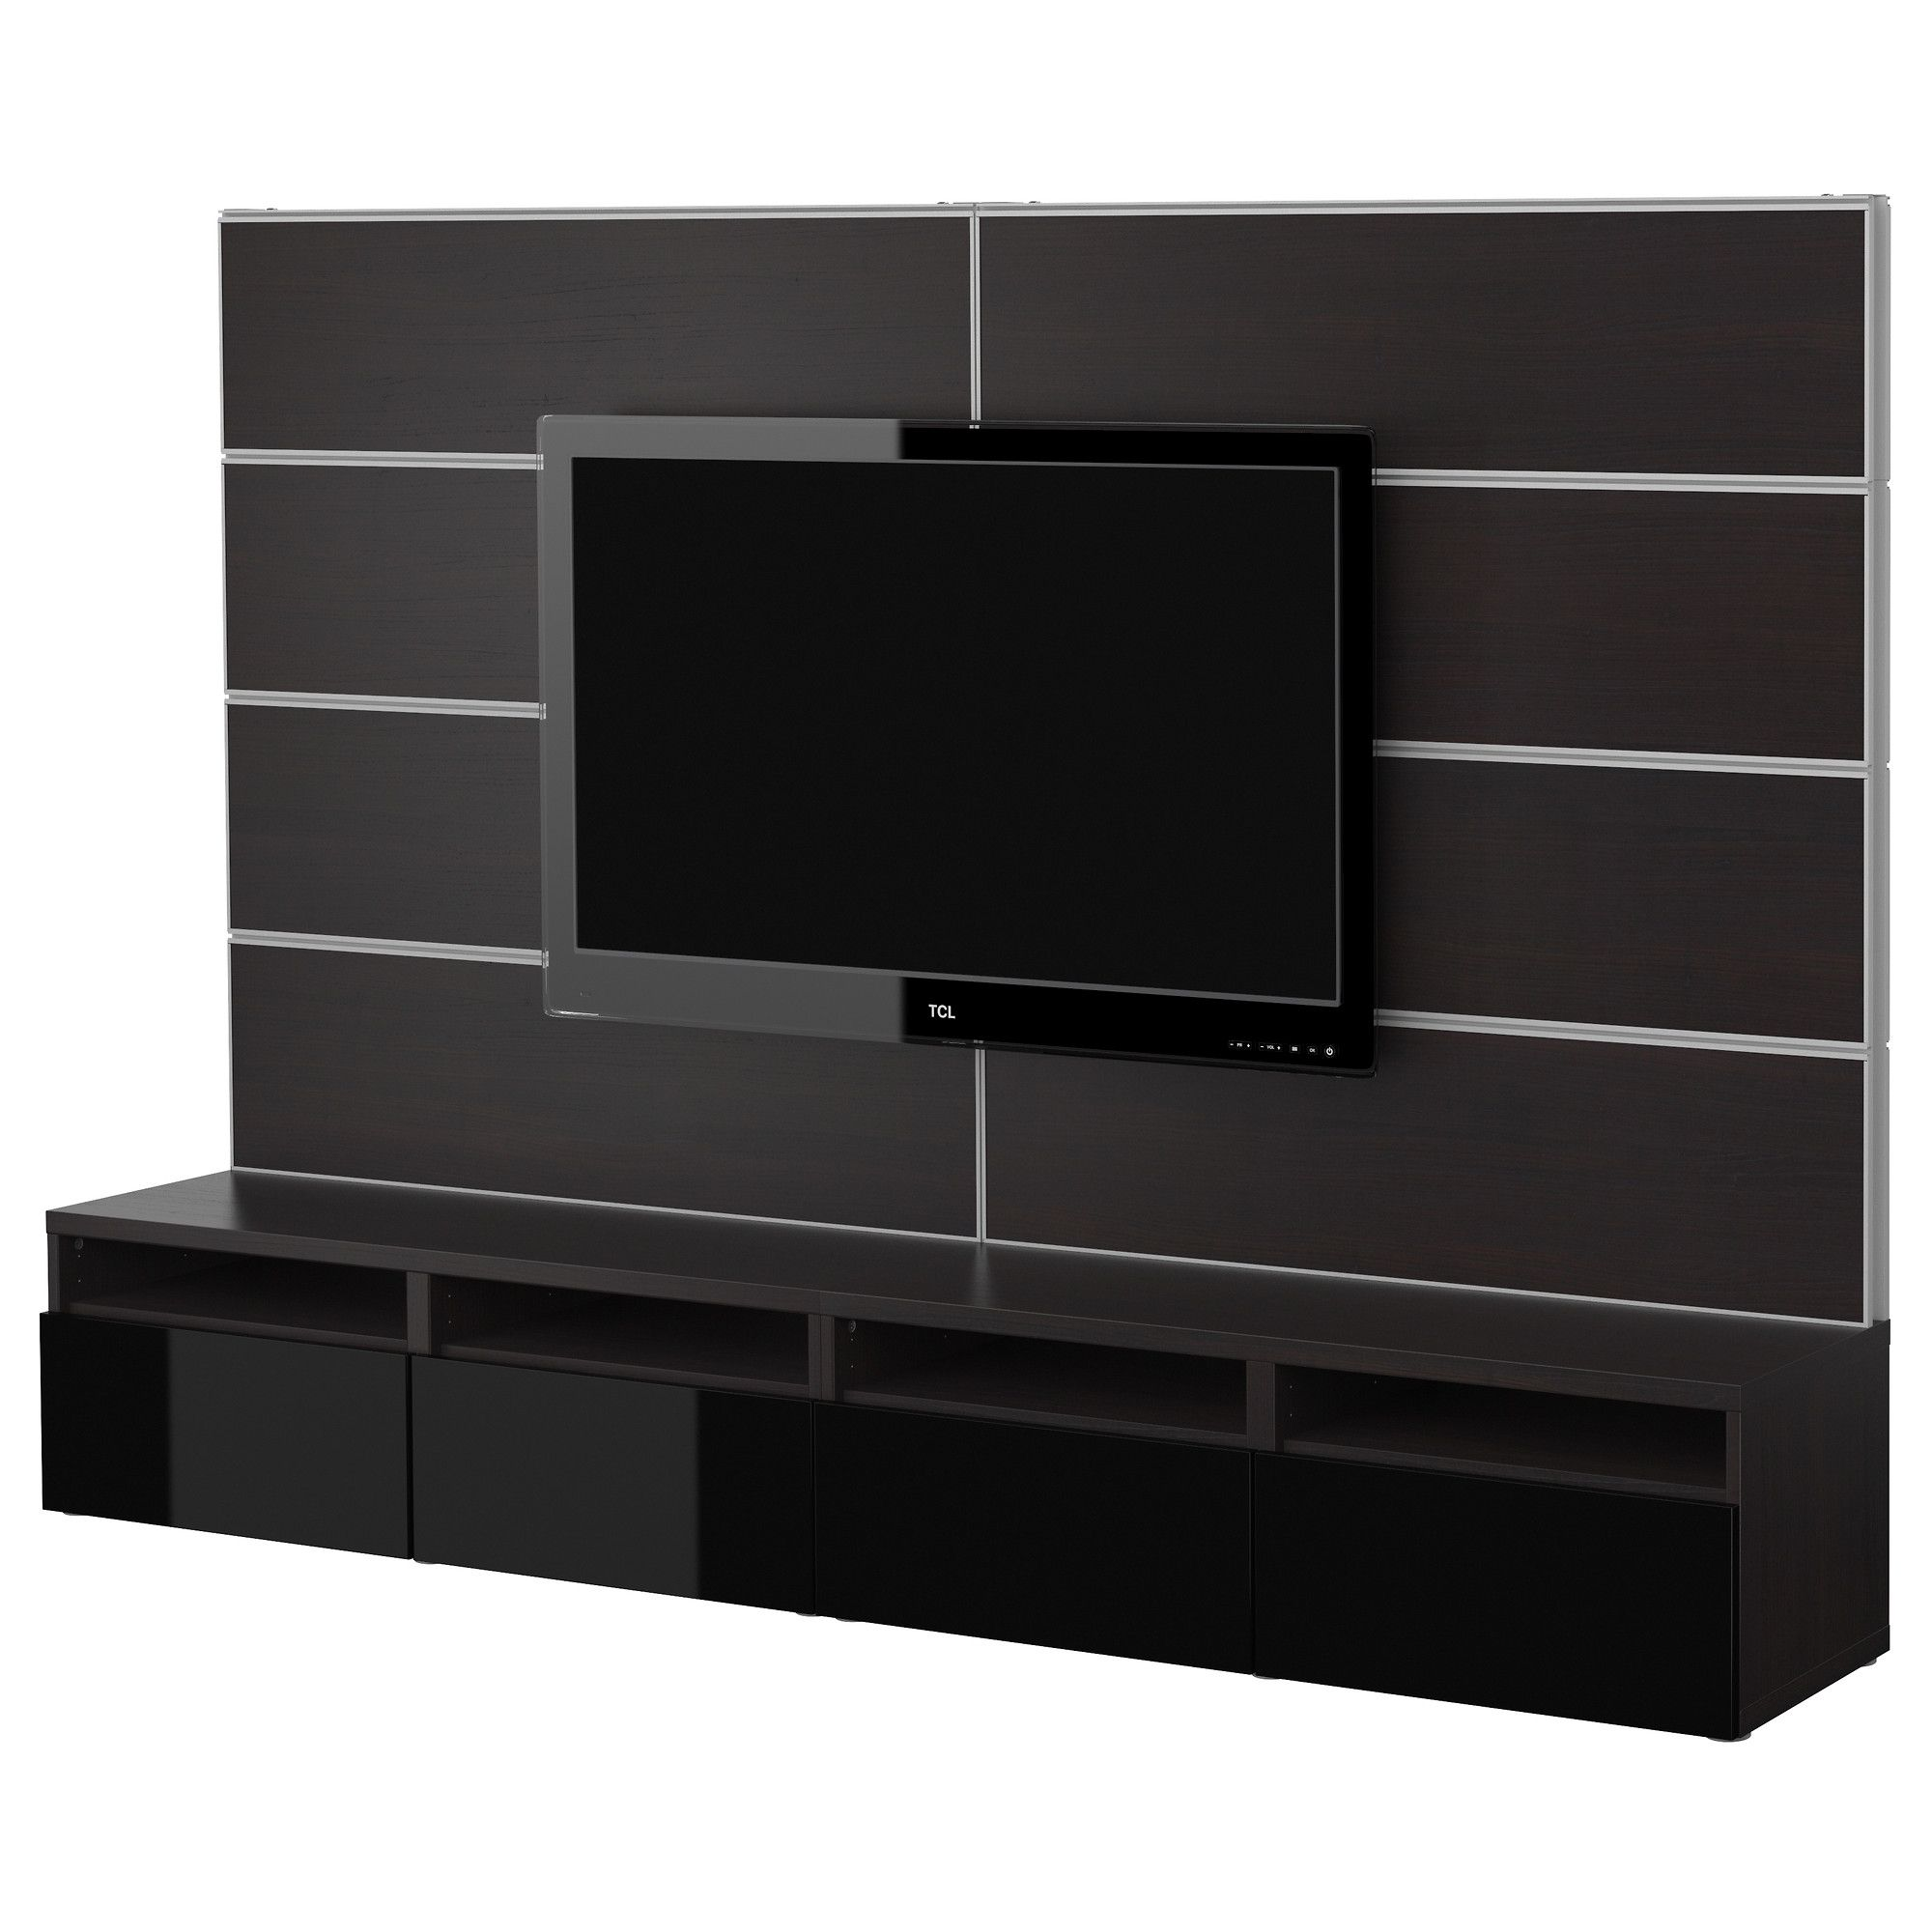 best tv storage combination black brown black ikea your different media devices. Black Bedroom Furniture Sets. Home Design Ideas